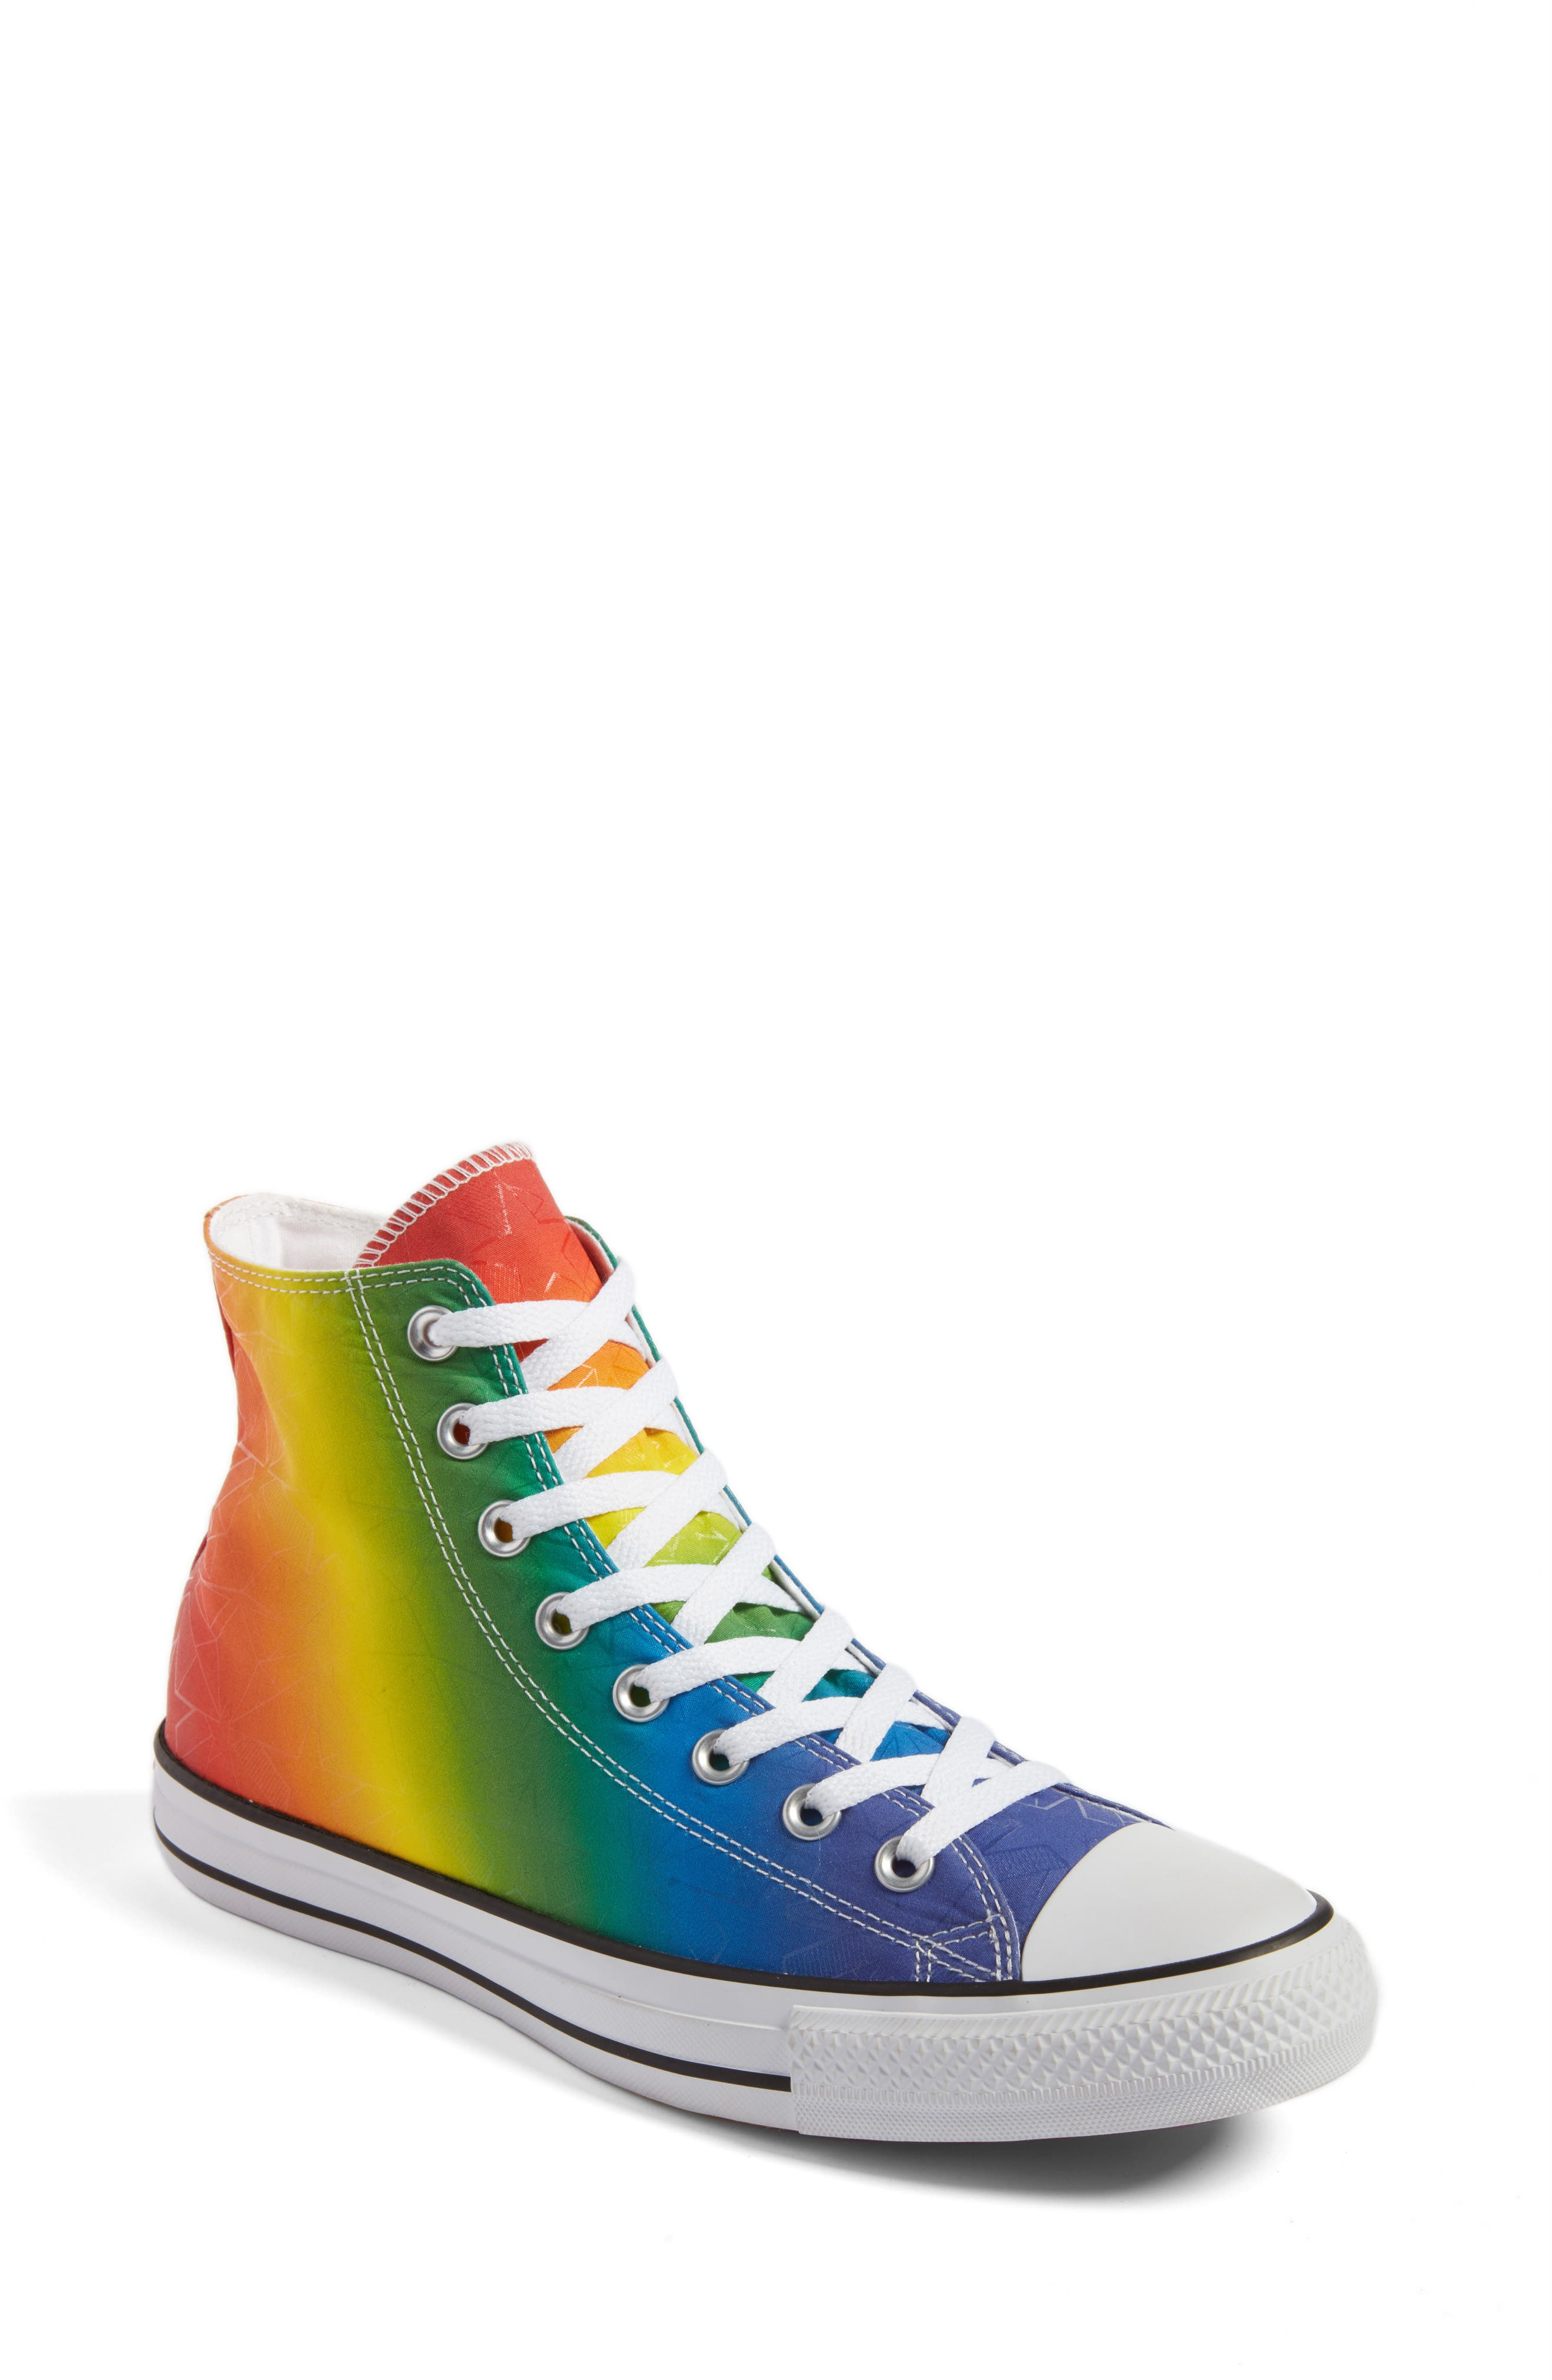 Alternate Image 1 Selected - Converse Chuck Taylor® All Star® Pride High Top Sneaker (Women)